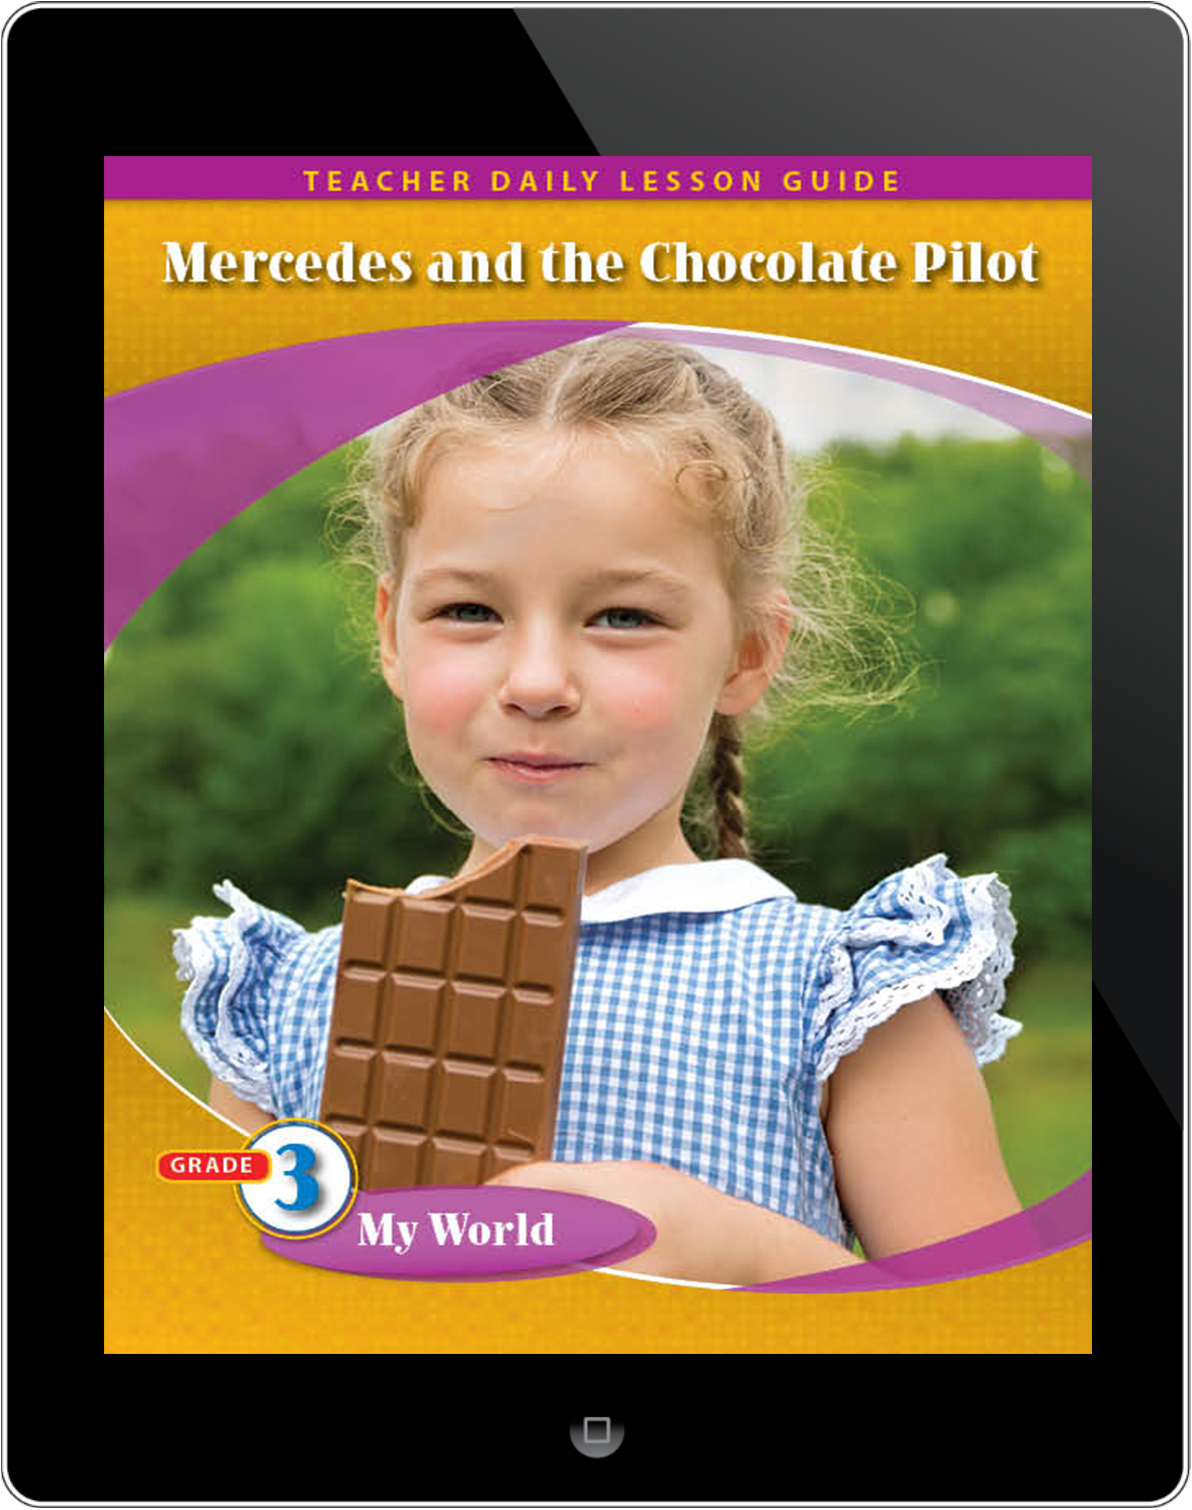 Pathways2.0 Grade 3 My World Unit: Mercedes and the Chocolate Pilot Daily Lesson Guide 5 Year License